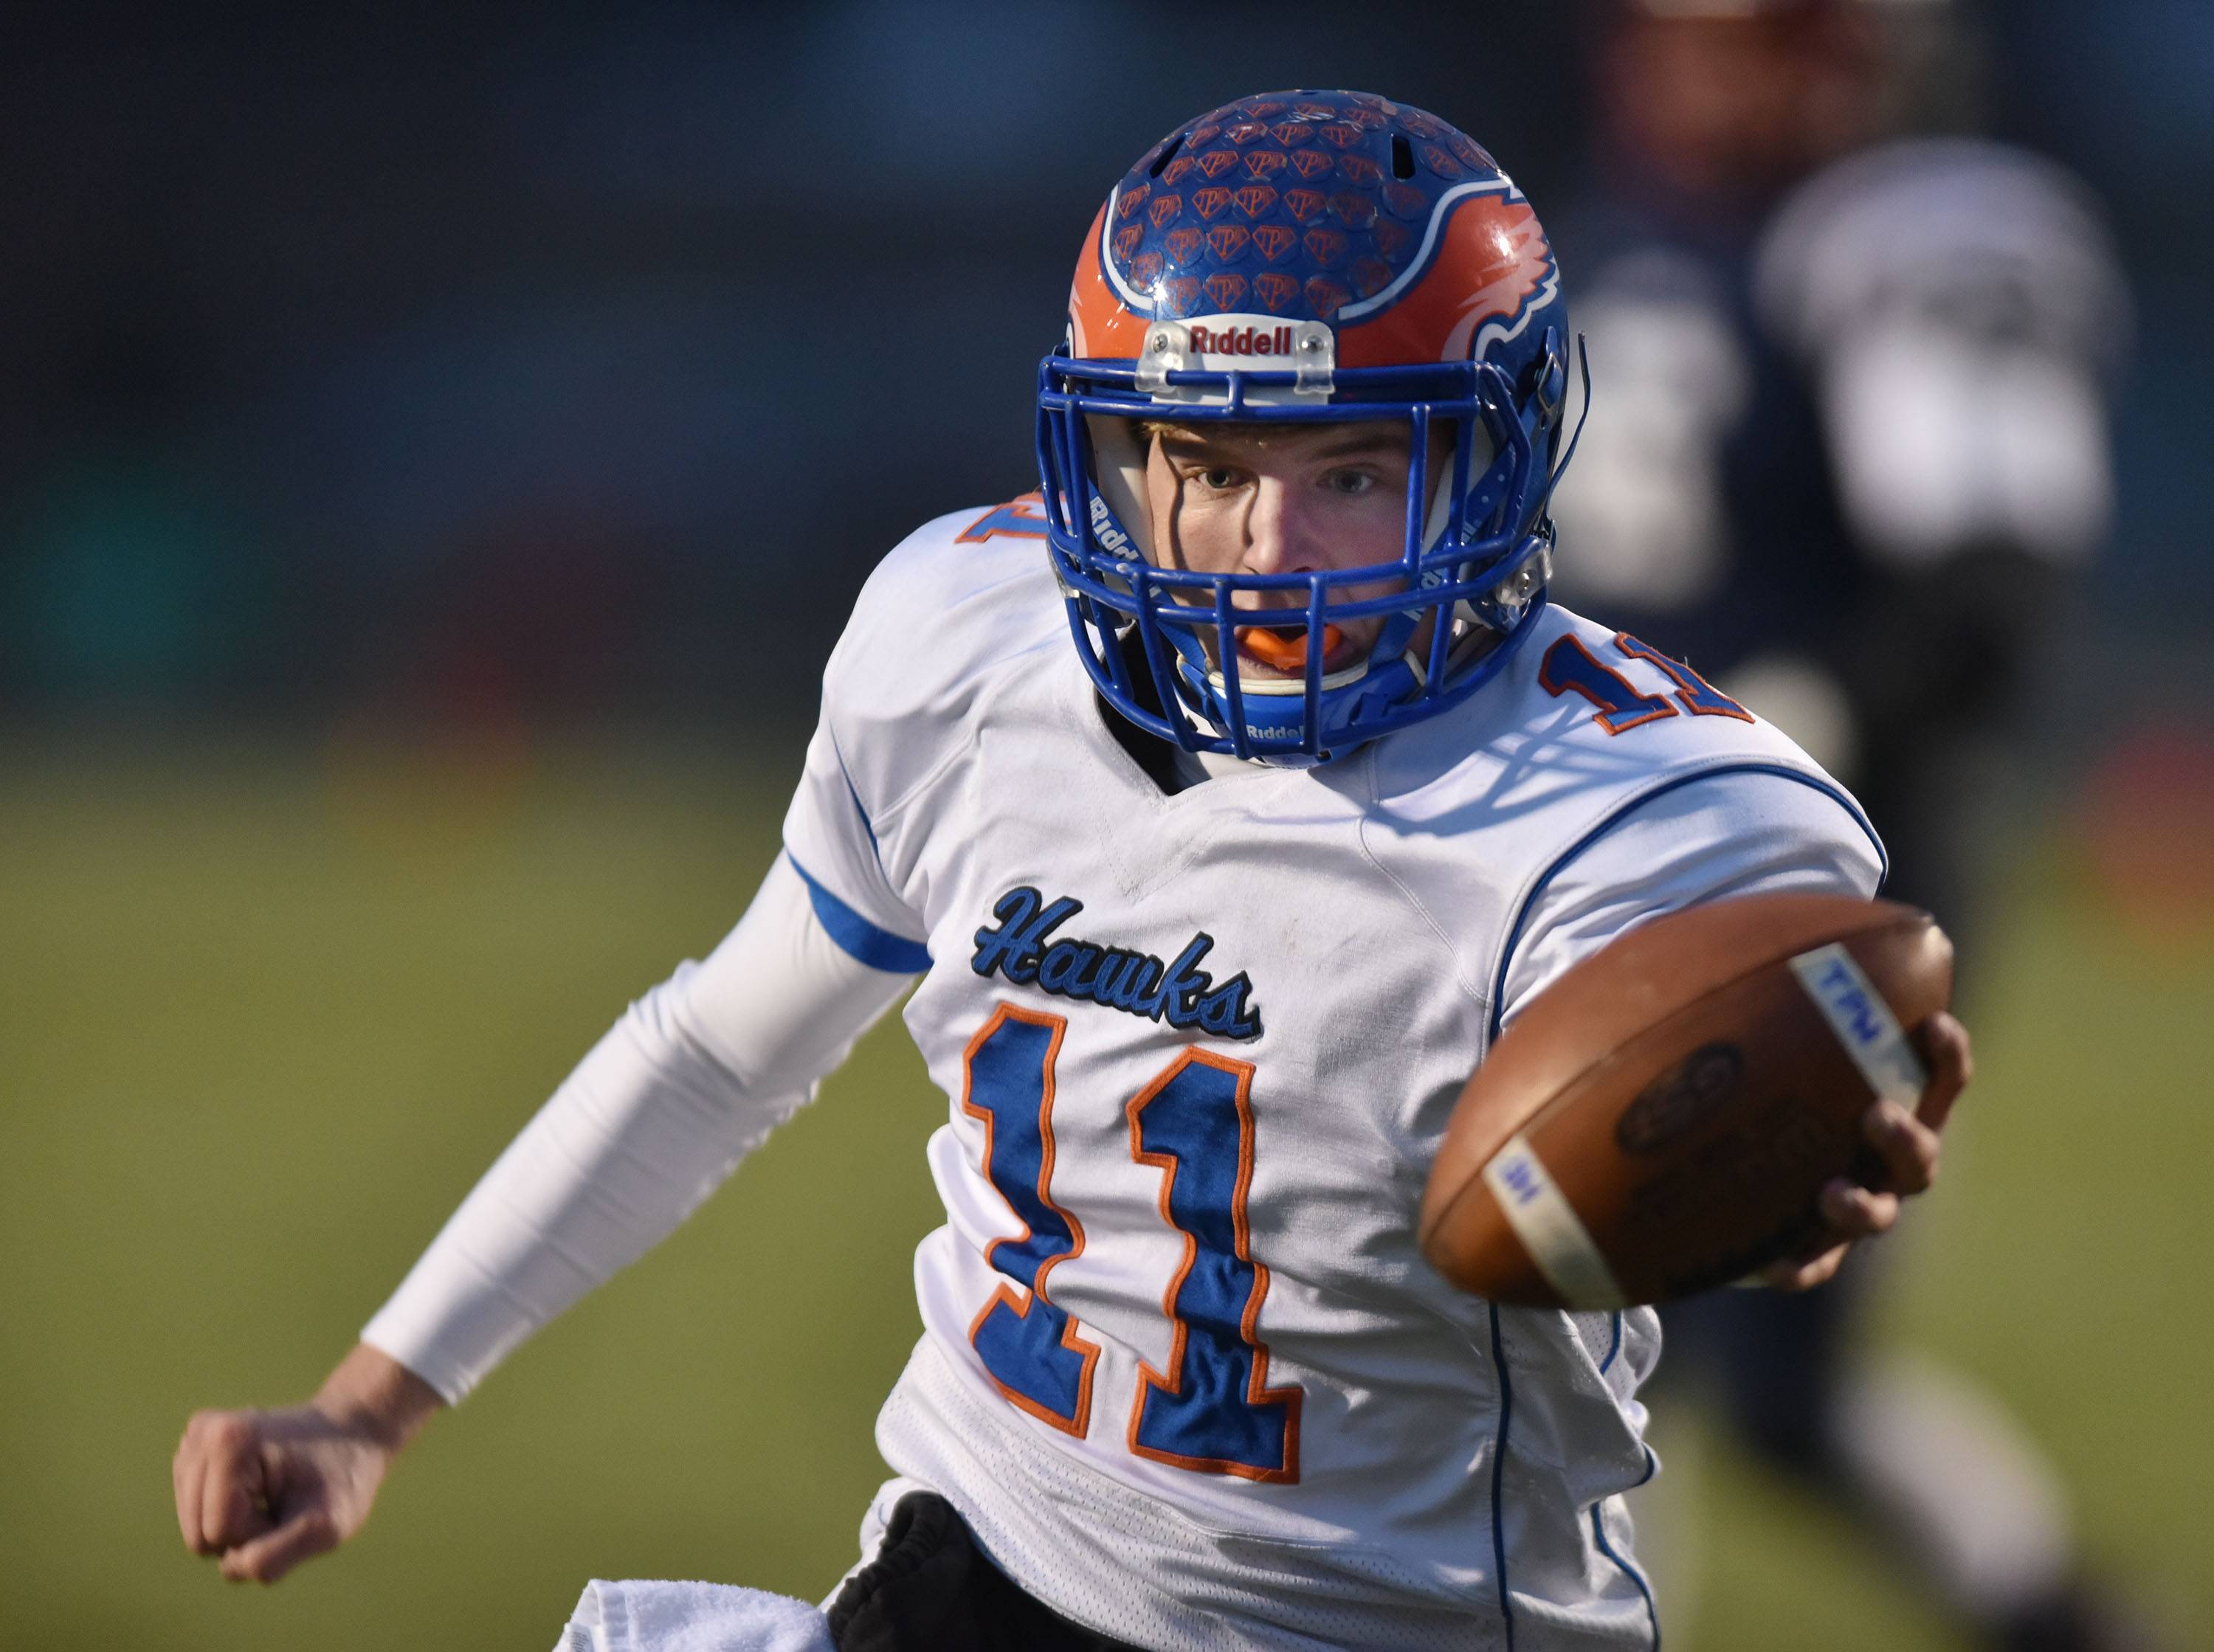 Hoffman Estates quarterback Austin Coalson reaches the ball over the goal line for a first-half touchdown against host Belvidere North on Saturday in the Class 6A state quarterfinals.